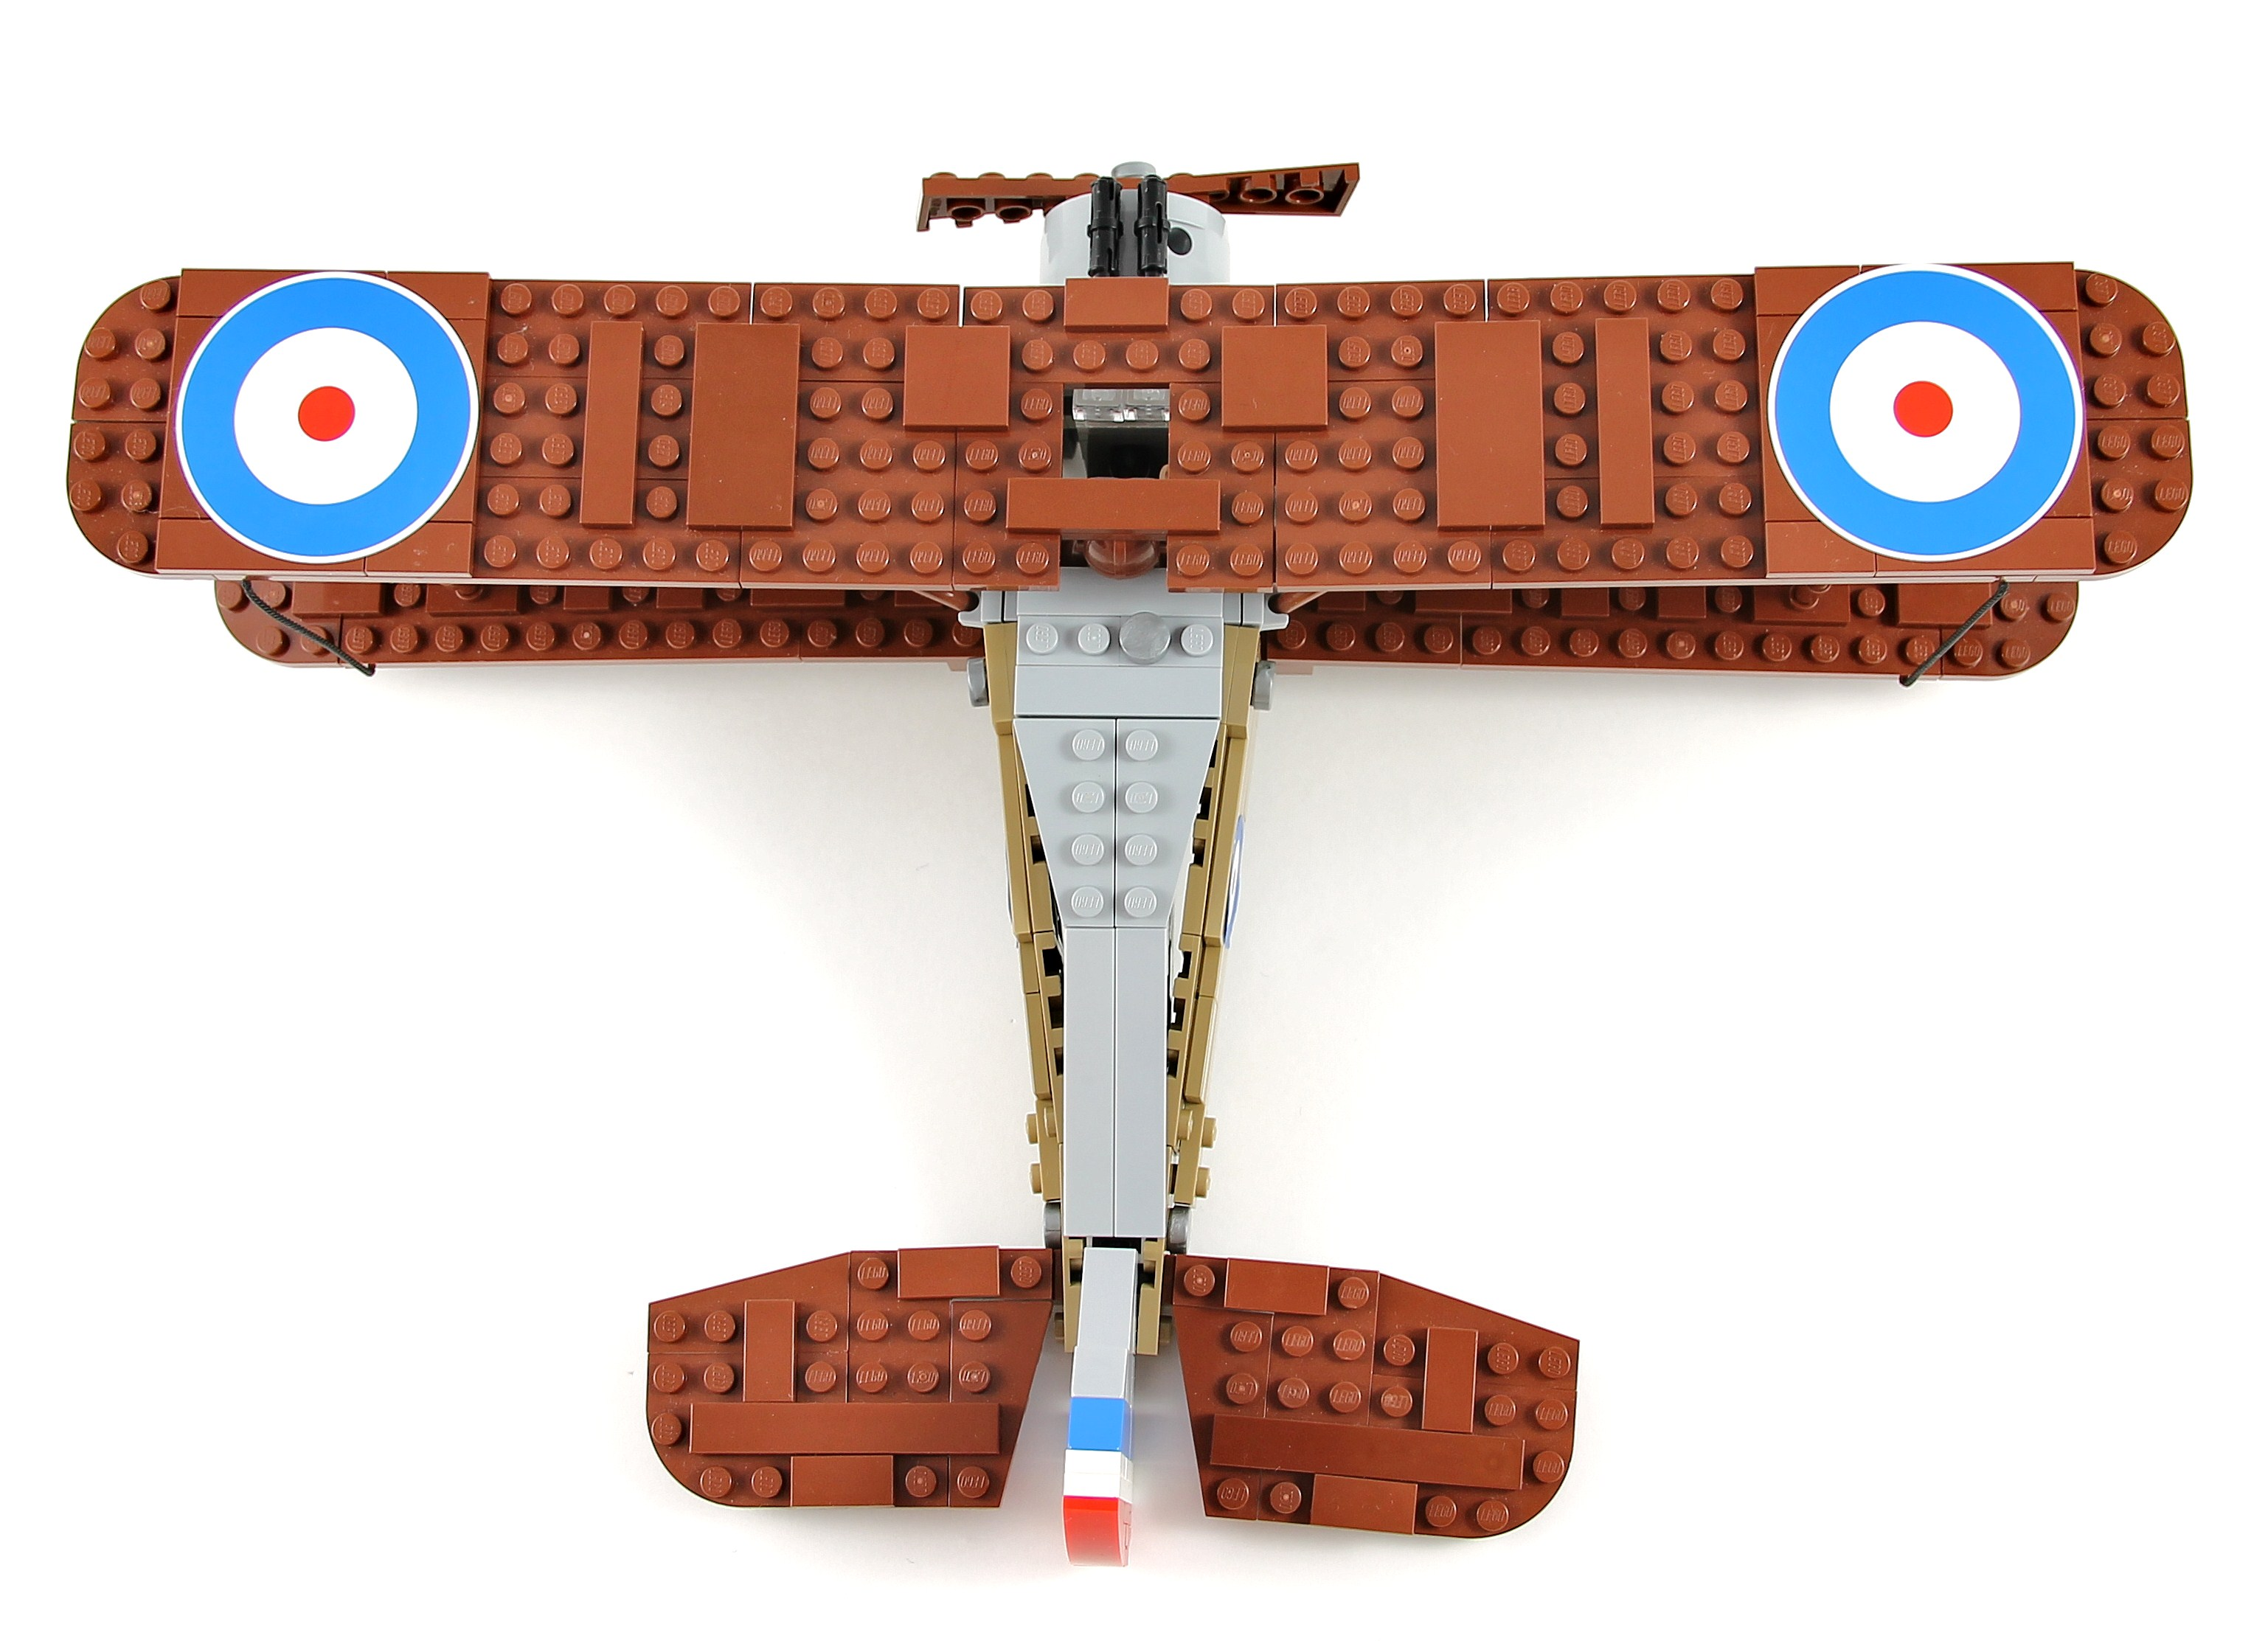 5-sopwith_camel-_top_view.jpg